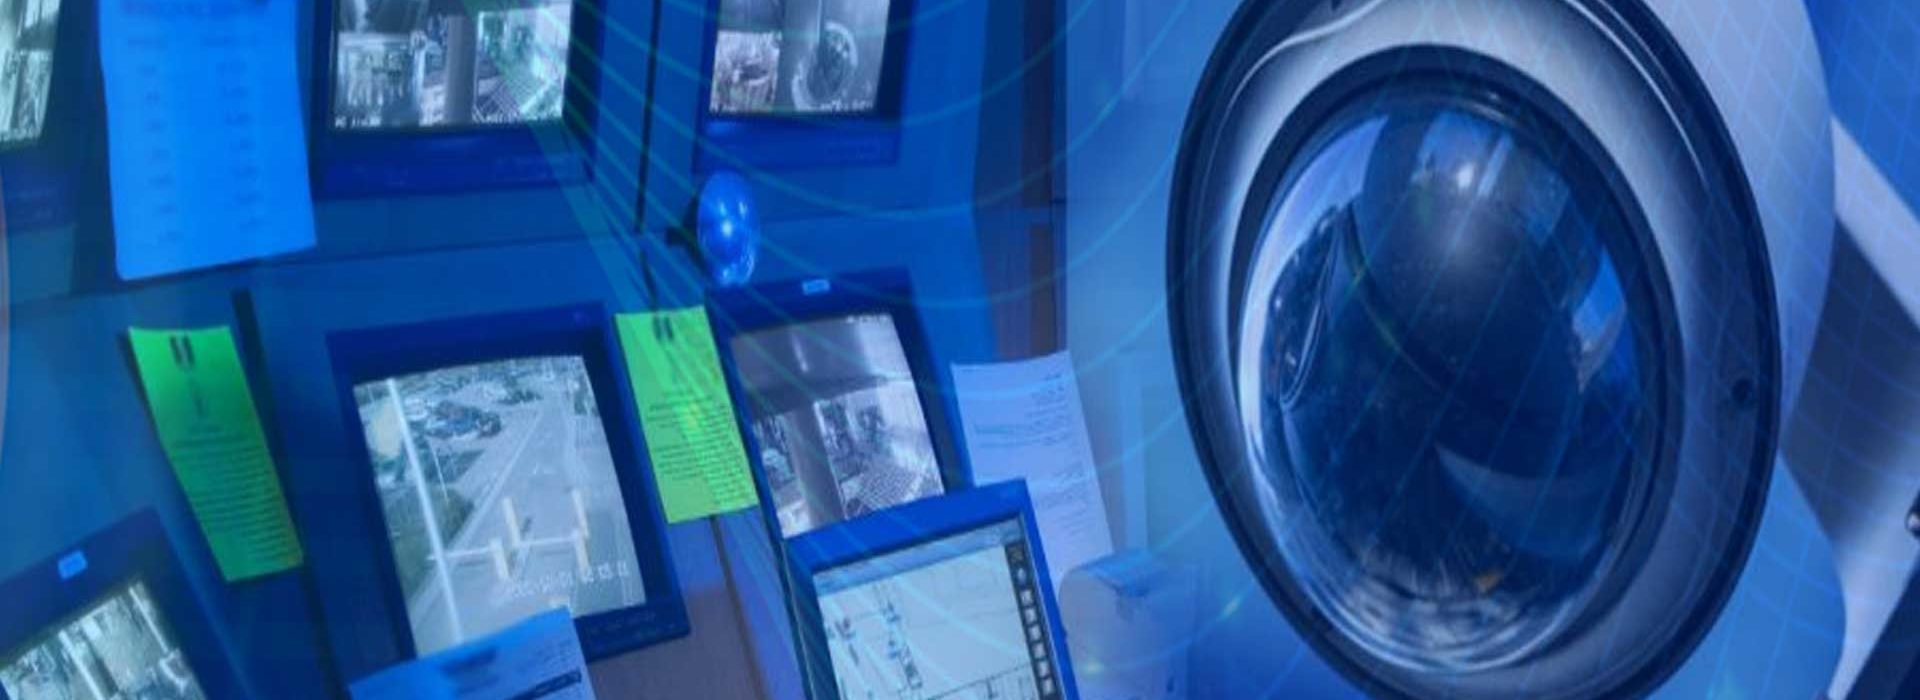 We do it all, Commercial Alarm, Video Surveillance, Vms, AI, Service & Installation